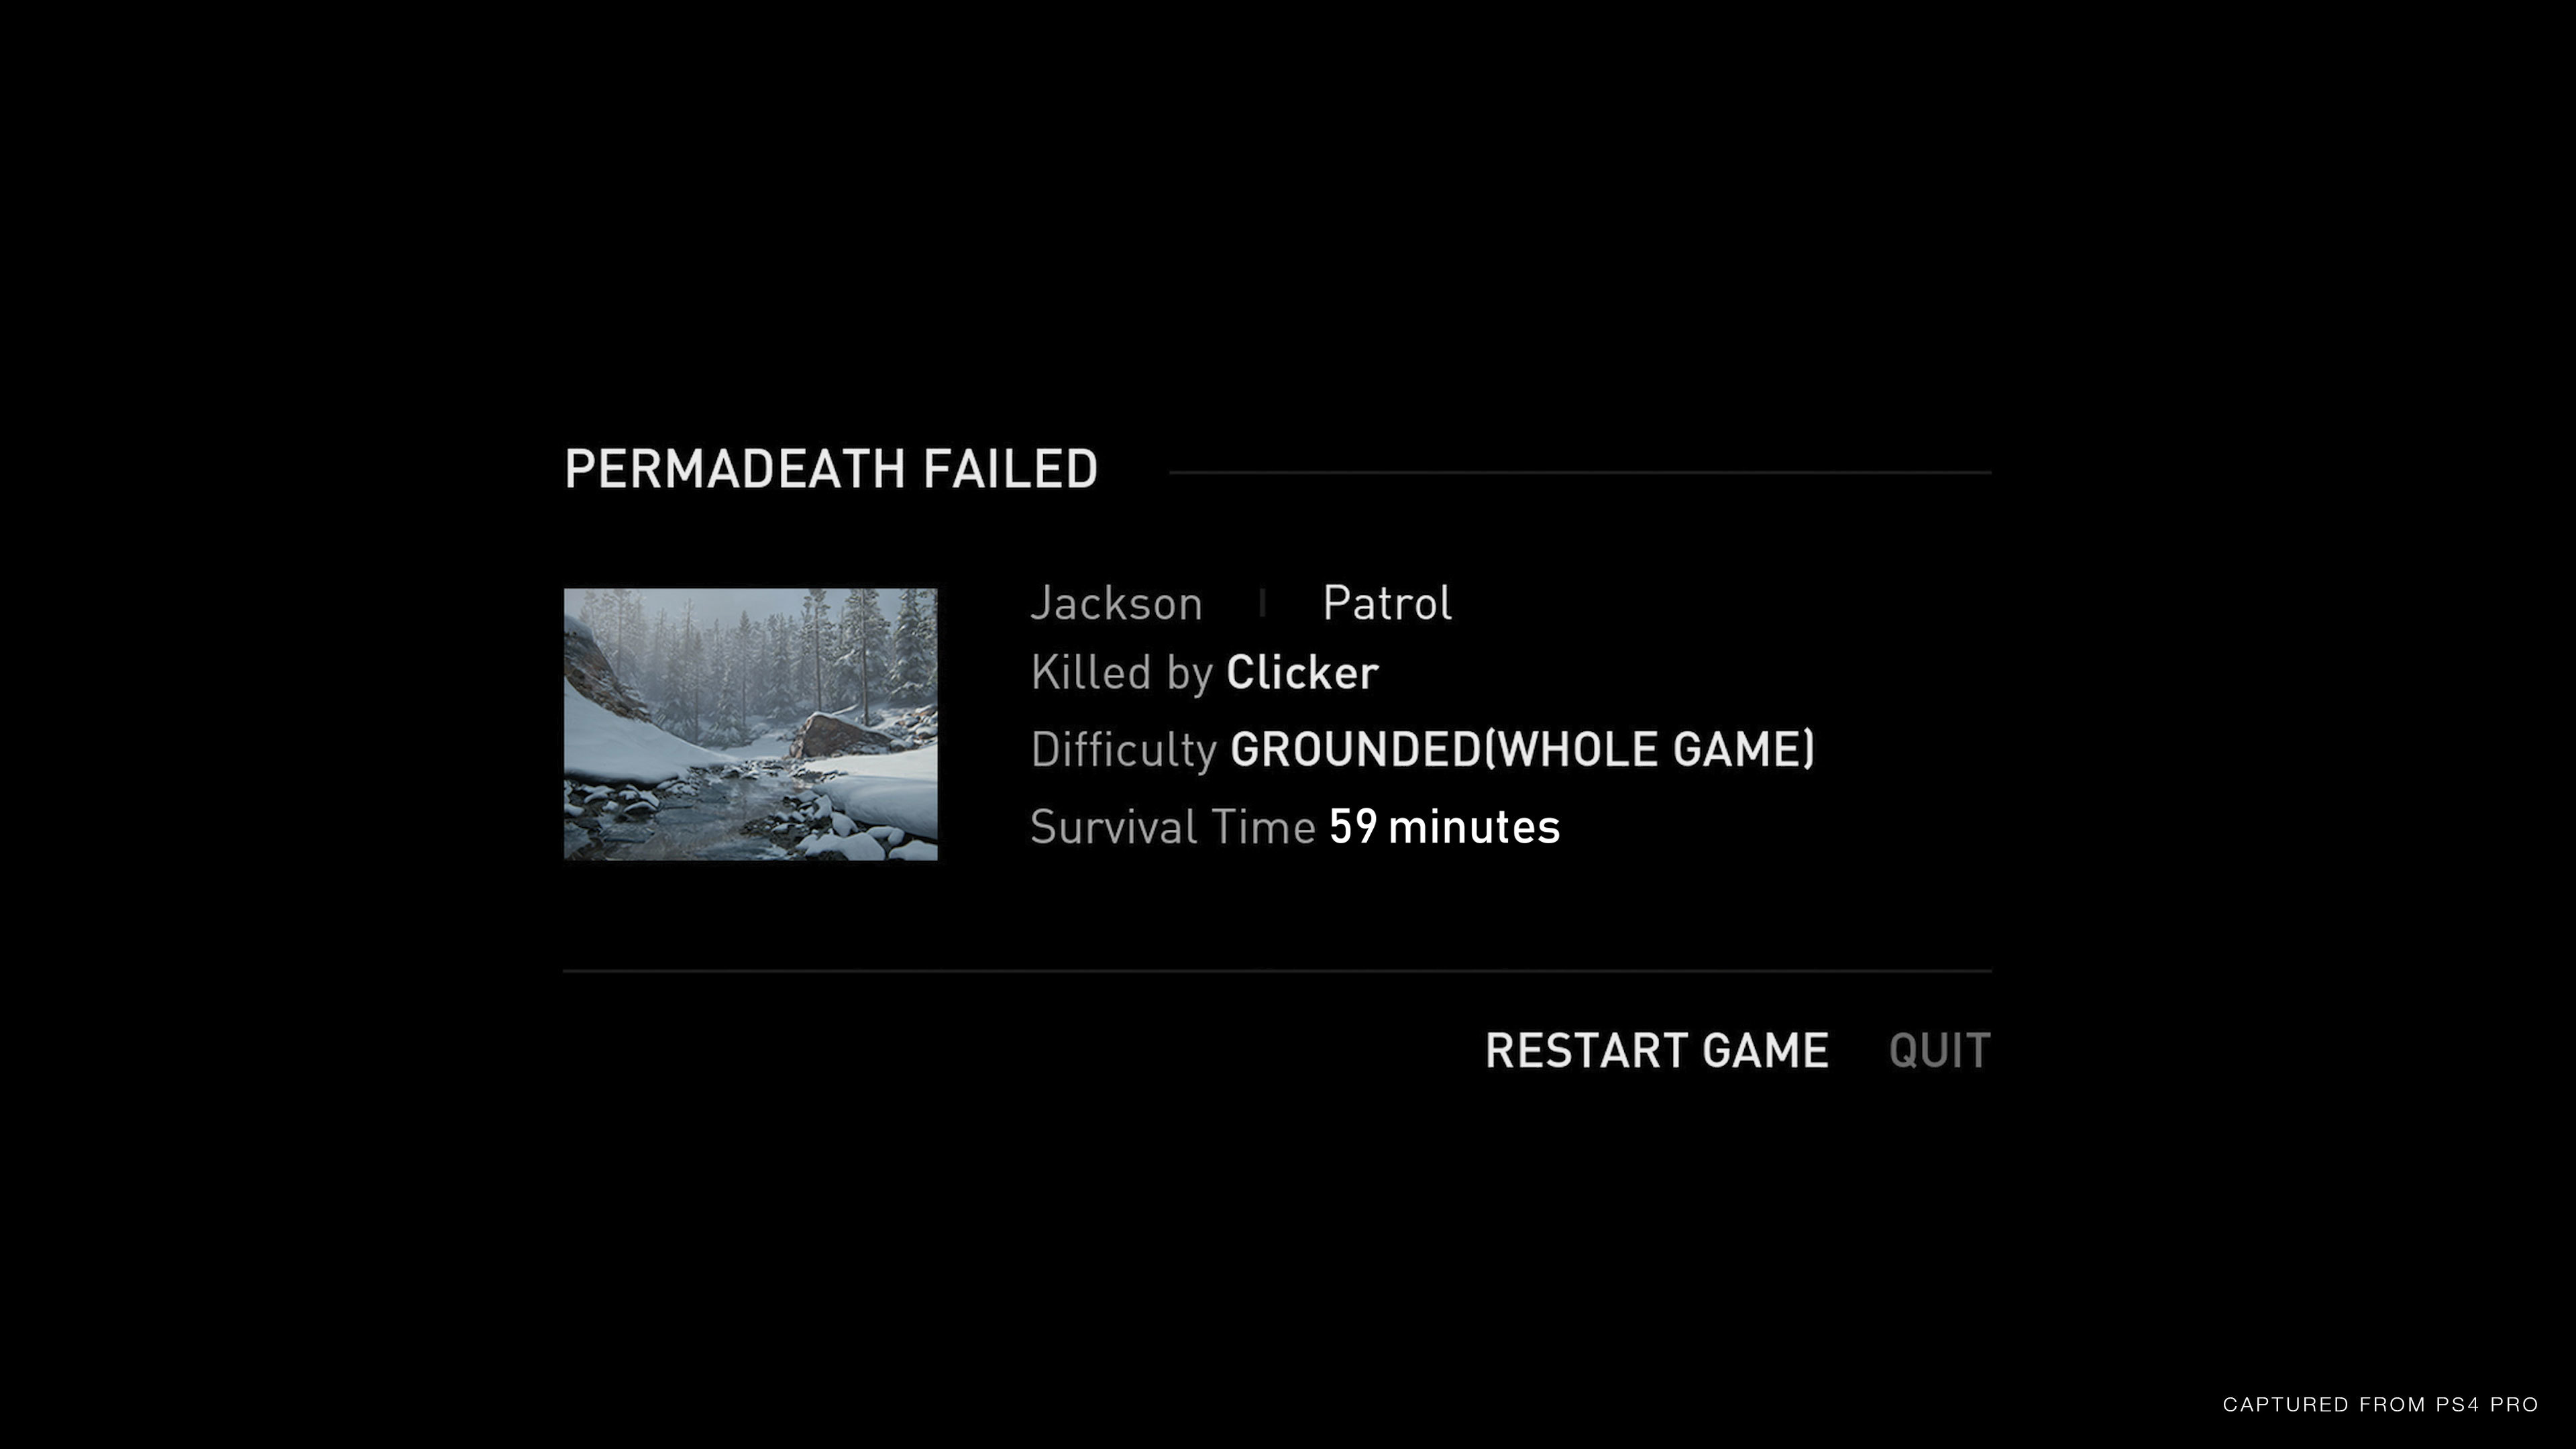 Permadeath failed screen showing: Jackson Patrol, Killed by Clicker, Difficulty Grounded (Whole Game), Survival Time 59 minutes, and Restart Game or Quit